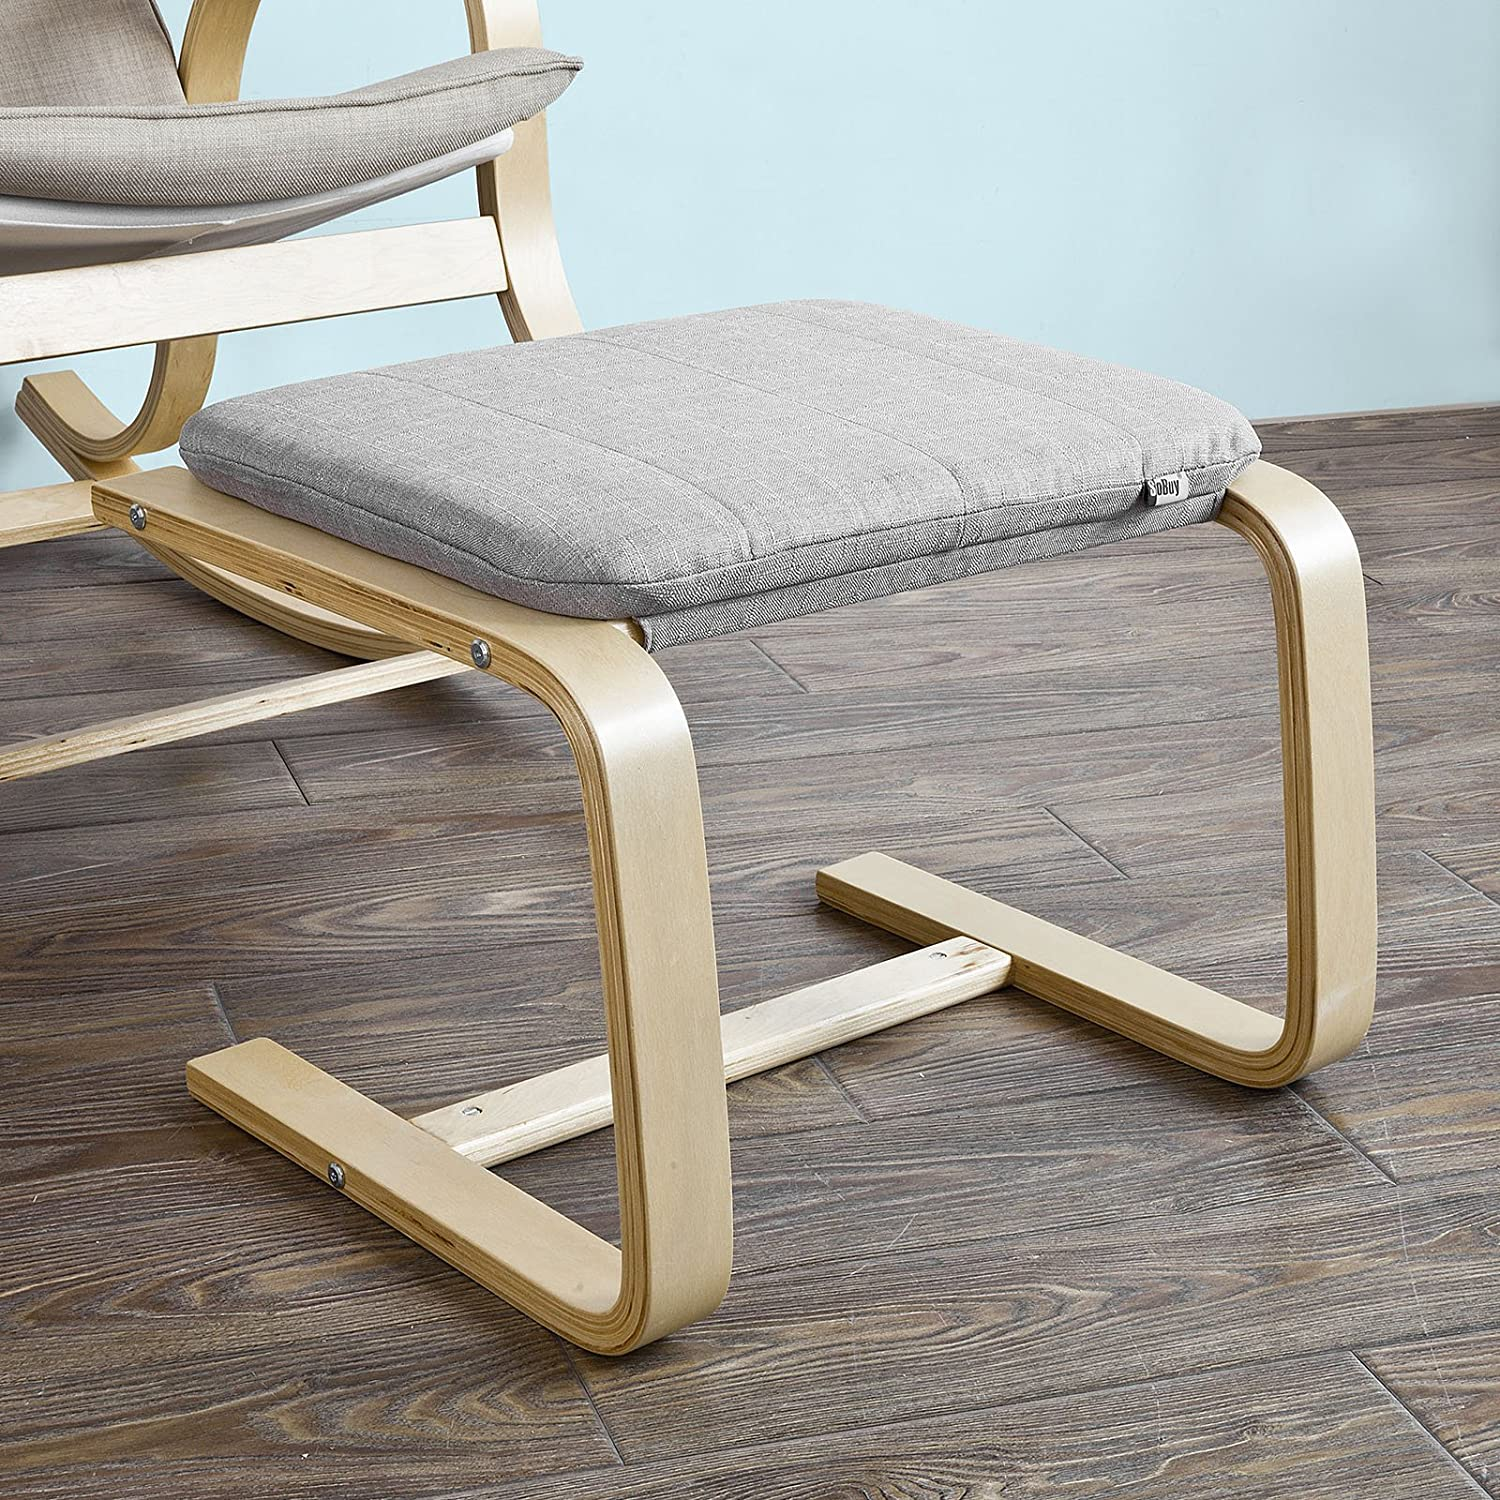 Haotian SoBuy FST38-HG, Beech Wood Footstool Footrest with Cushion, Foot Leg Rest